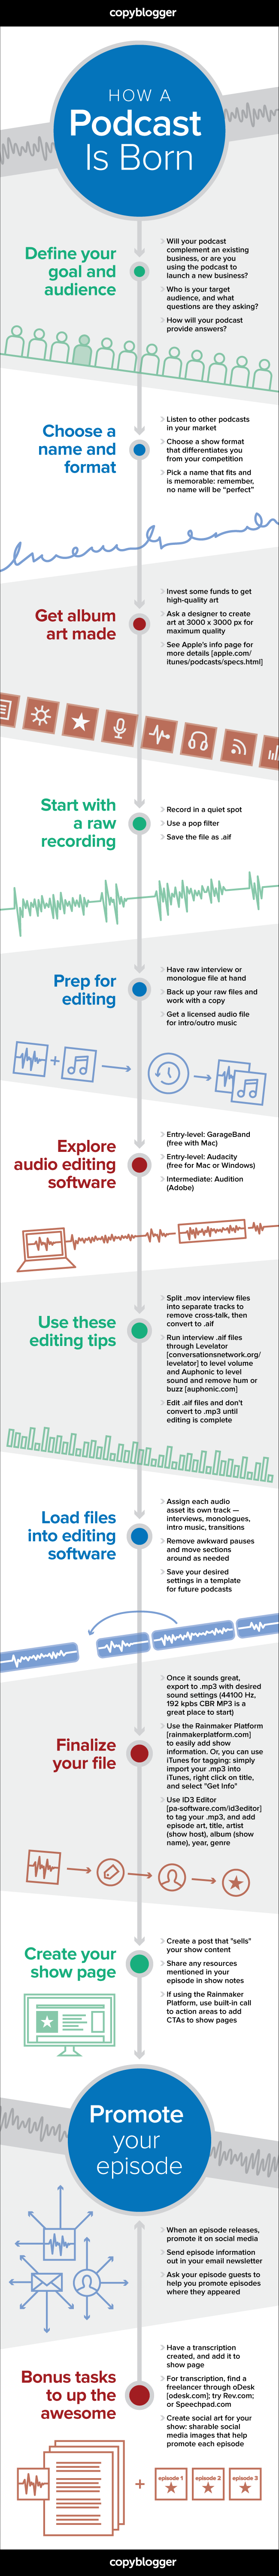 How a Podcast Is Born [Infographic]